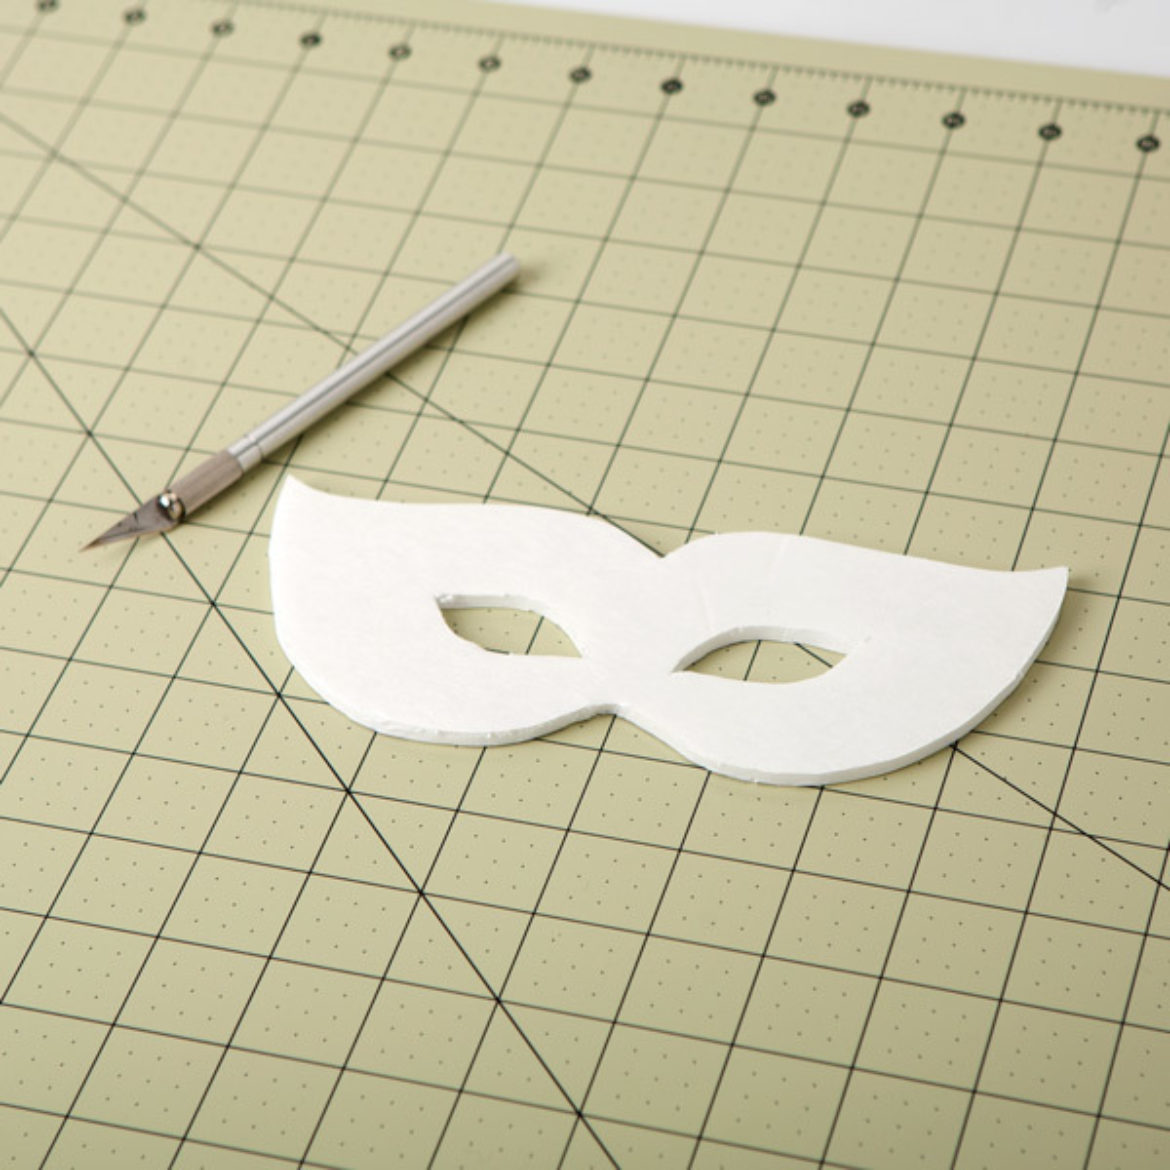 Mask drawn in the previous step cut out